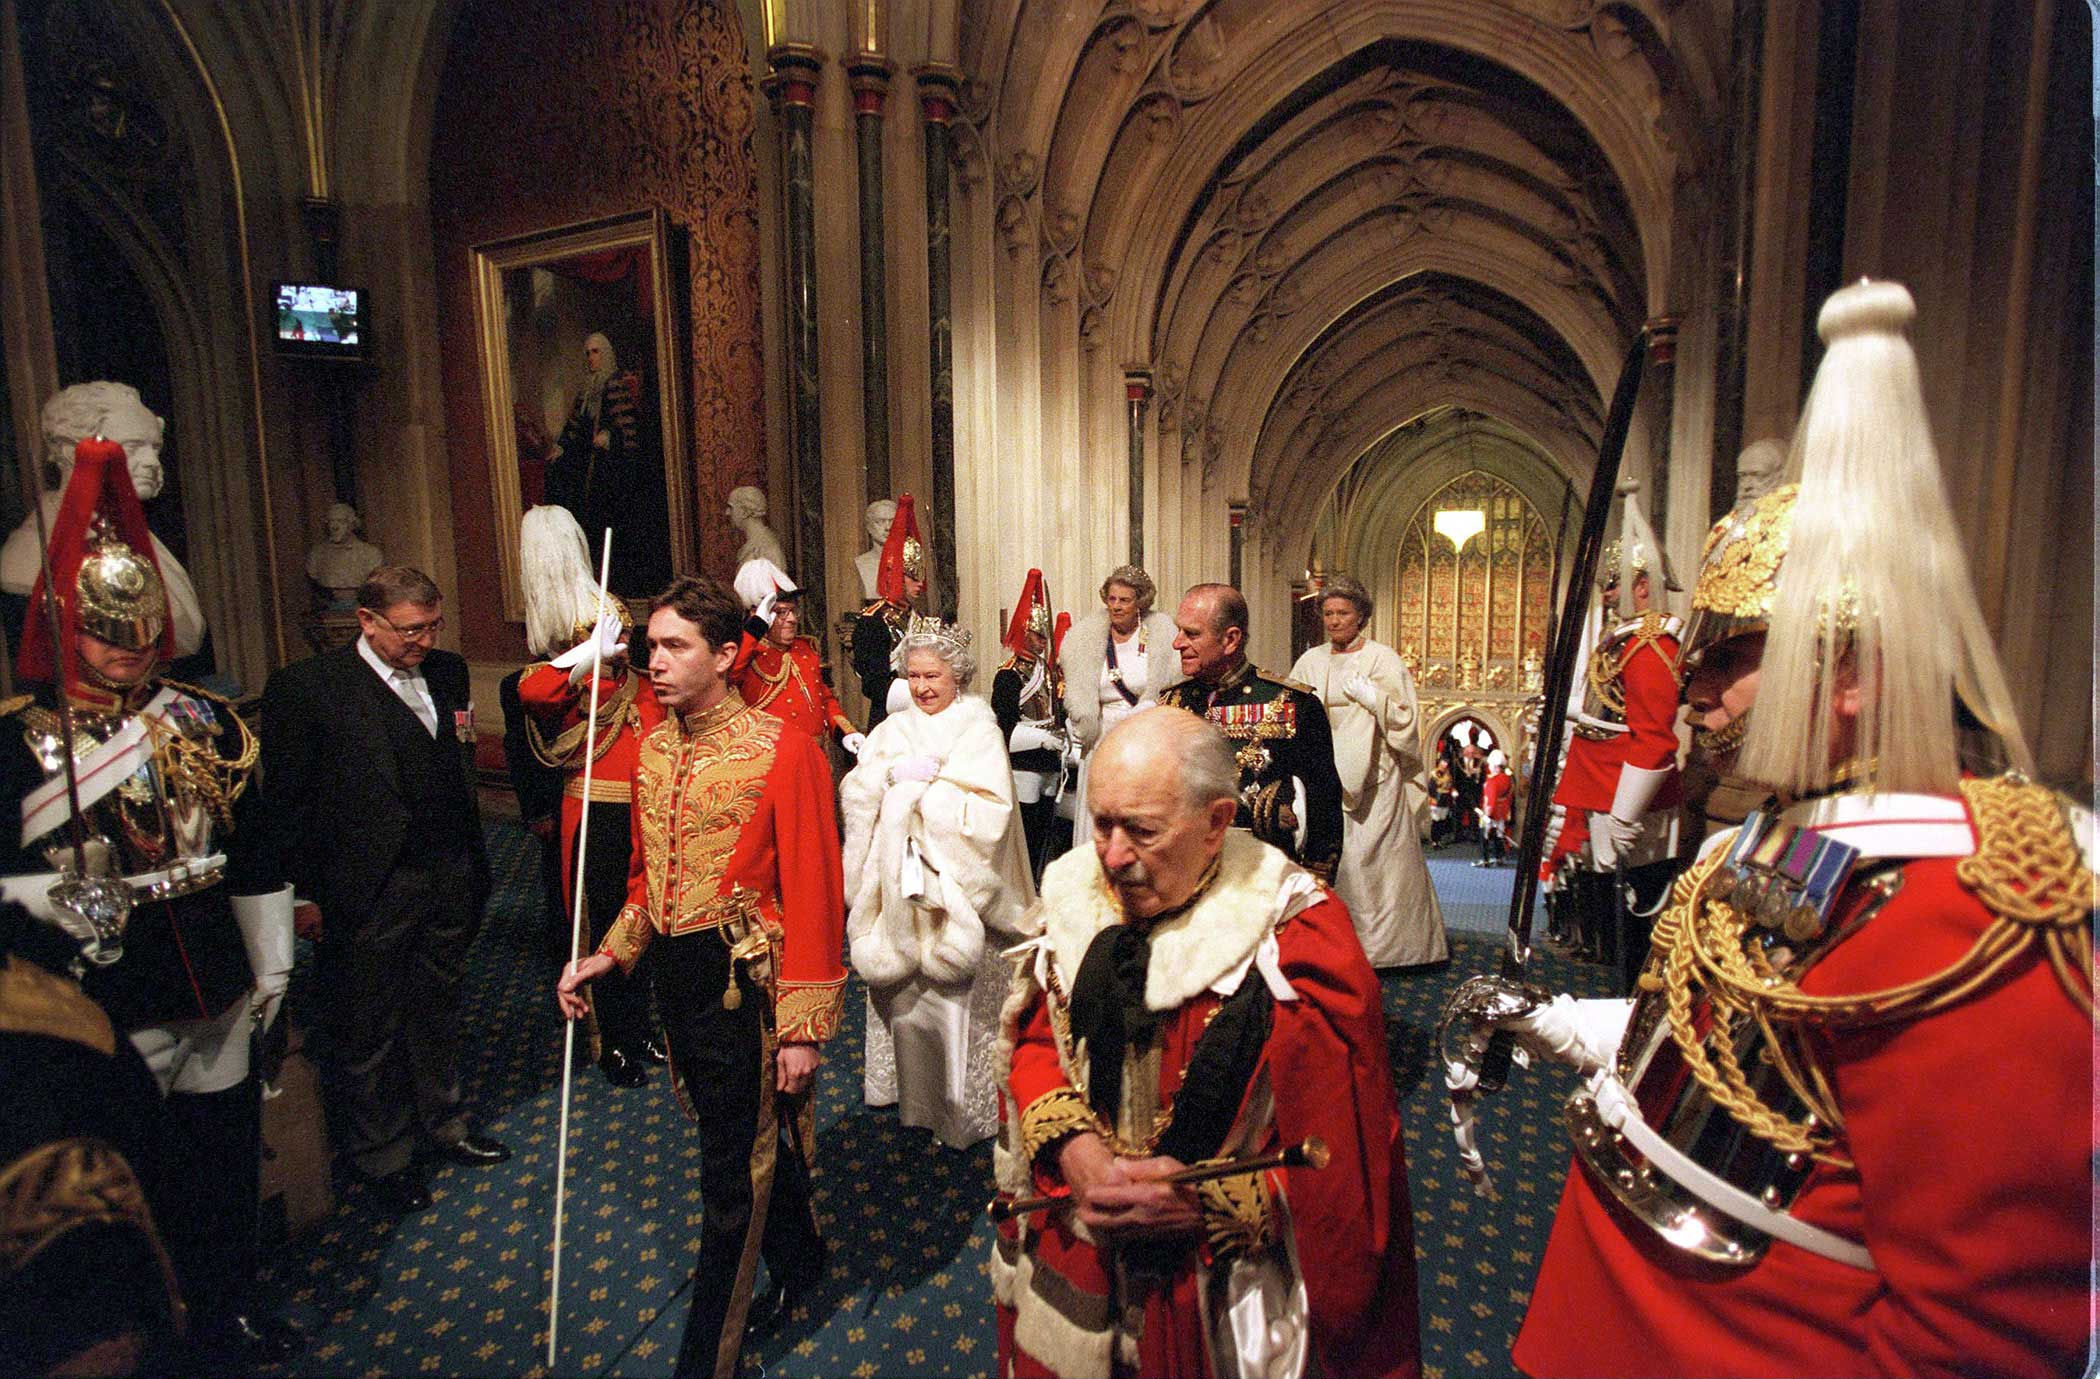 The Queen, with Prince Philip, is led by the Marquess of Cholmondeley and the Duke of Norfolk during an event that marks the beginning of a session of Parliament. Throughout her reign, Queen Elizabeth II has opened every session, except in 1959 and 1963, years when she was pregnant.